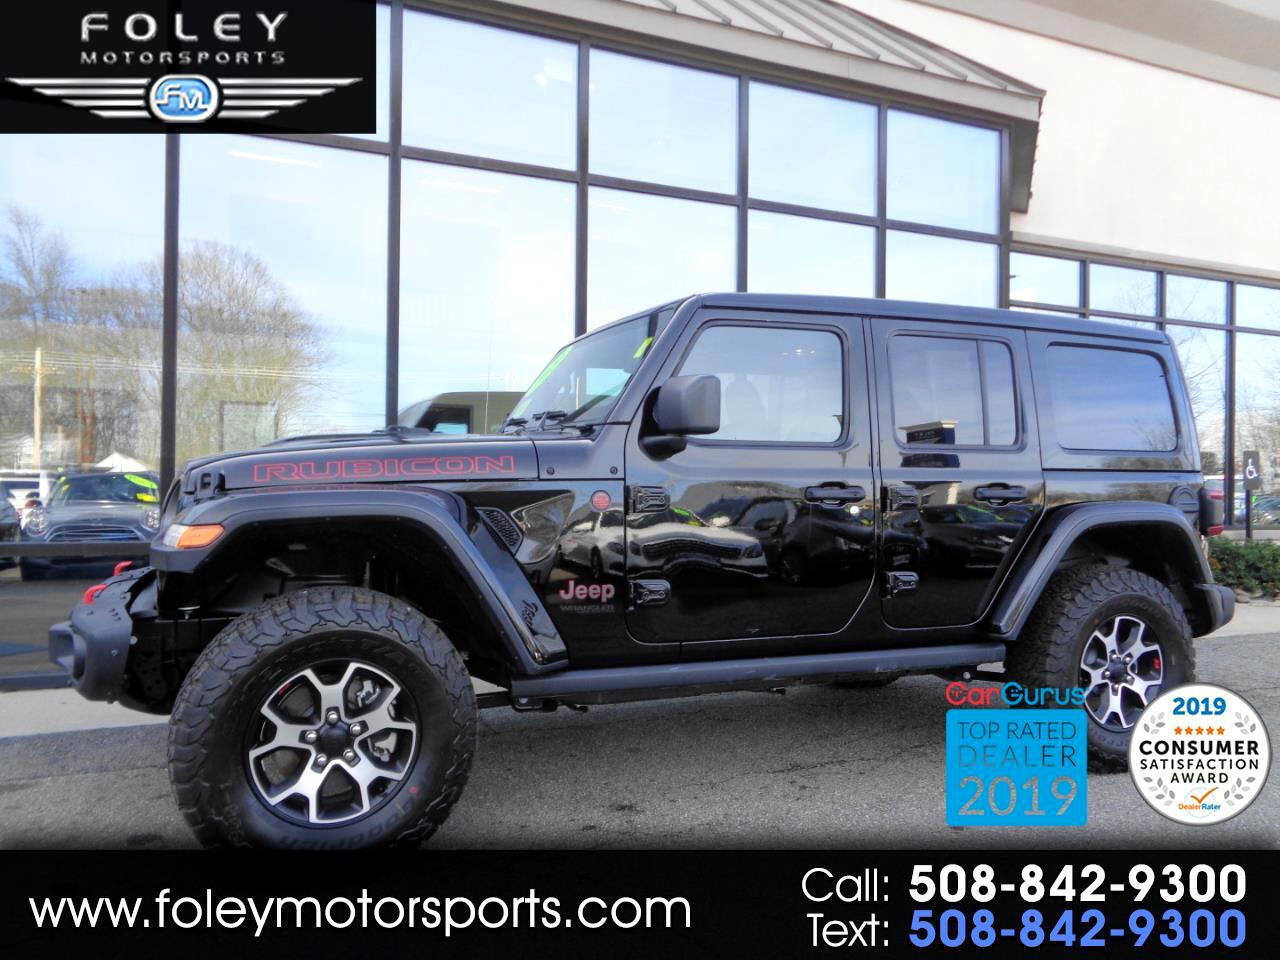 Jeep Wrangler Unlimited Rubicon 4x4 2020